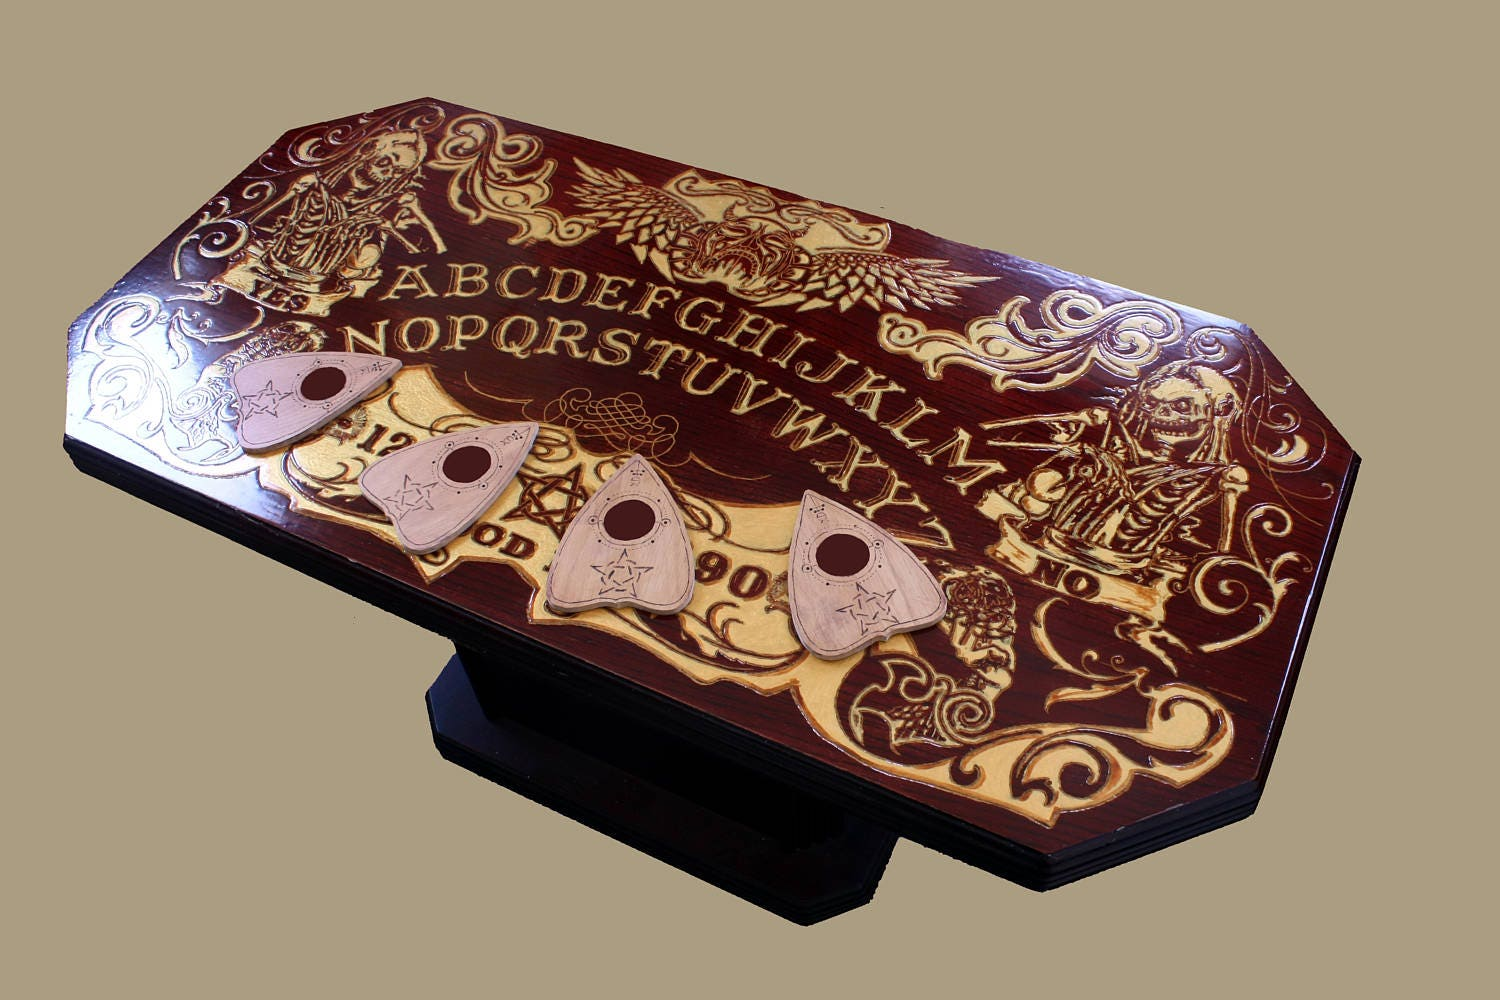 Ouija Board Pedestal Coffee Table   4 Planchette CoastersEngraved Design Finished Gold AcrylicCoated with VarnishH 45 W 100 D 50 (cm)